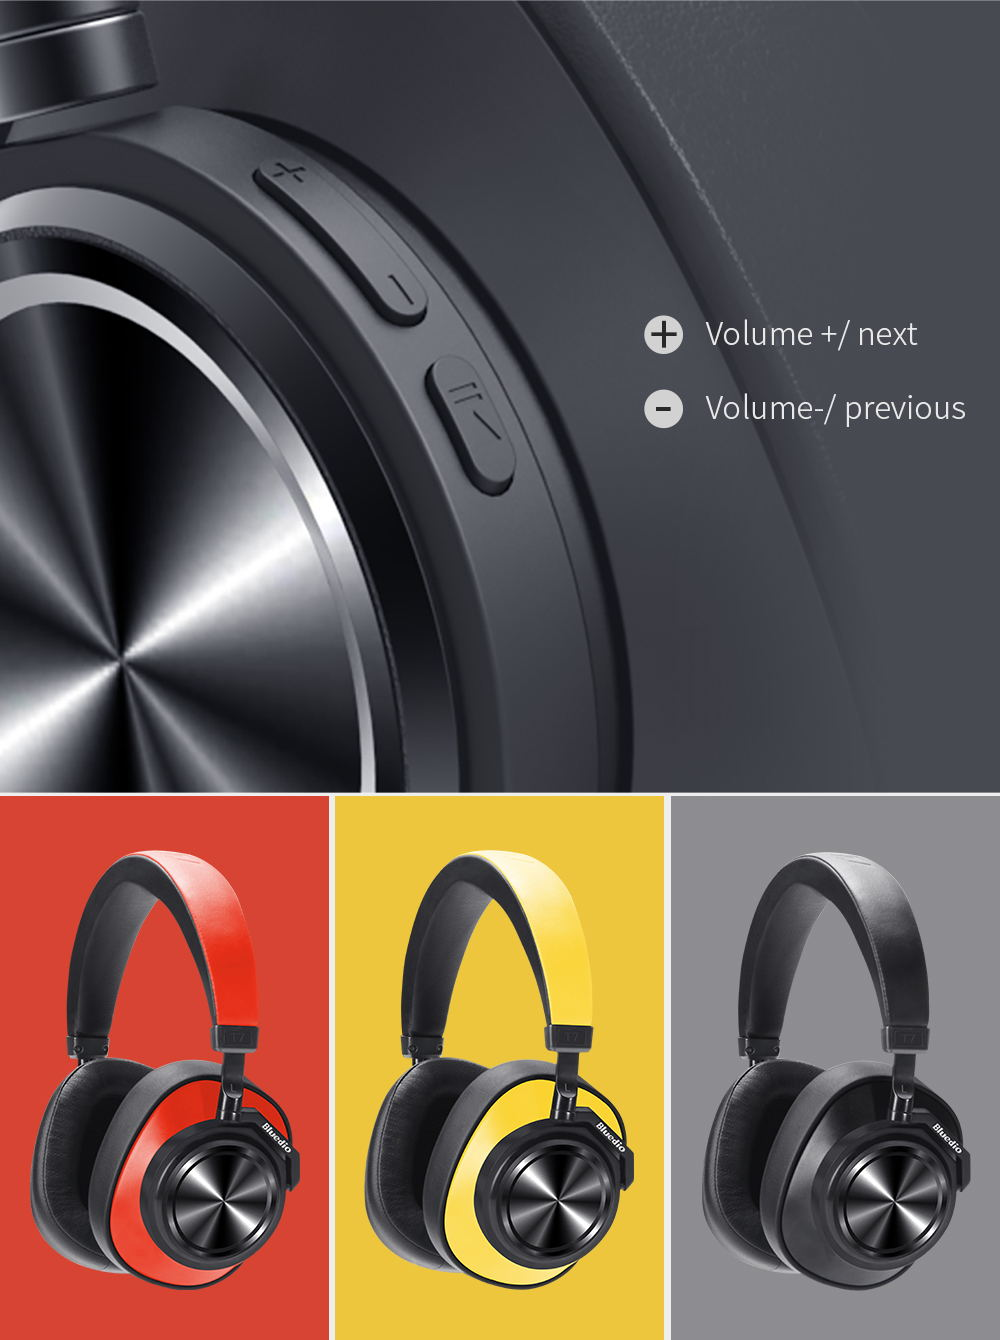 new bluedio t7 user-defined headphone